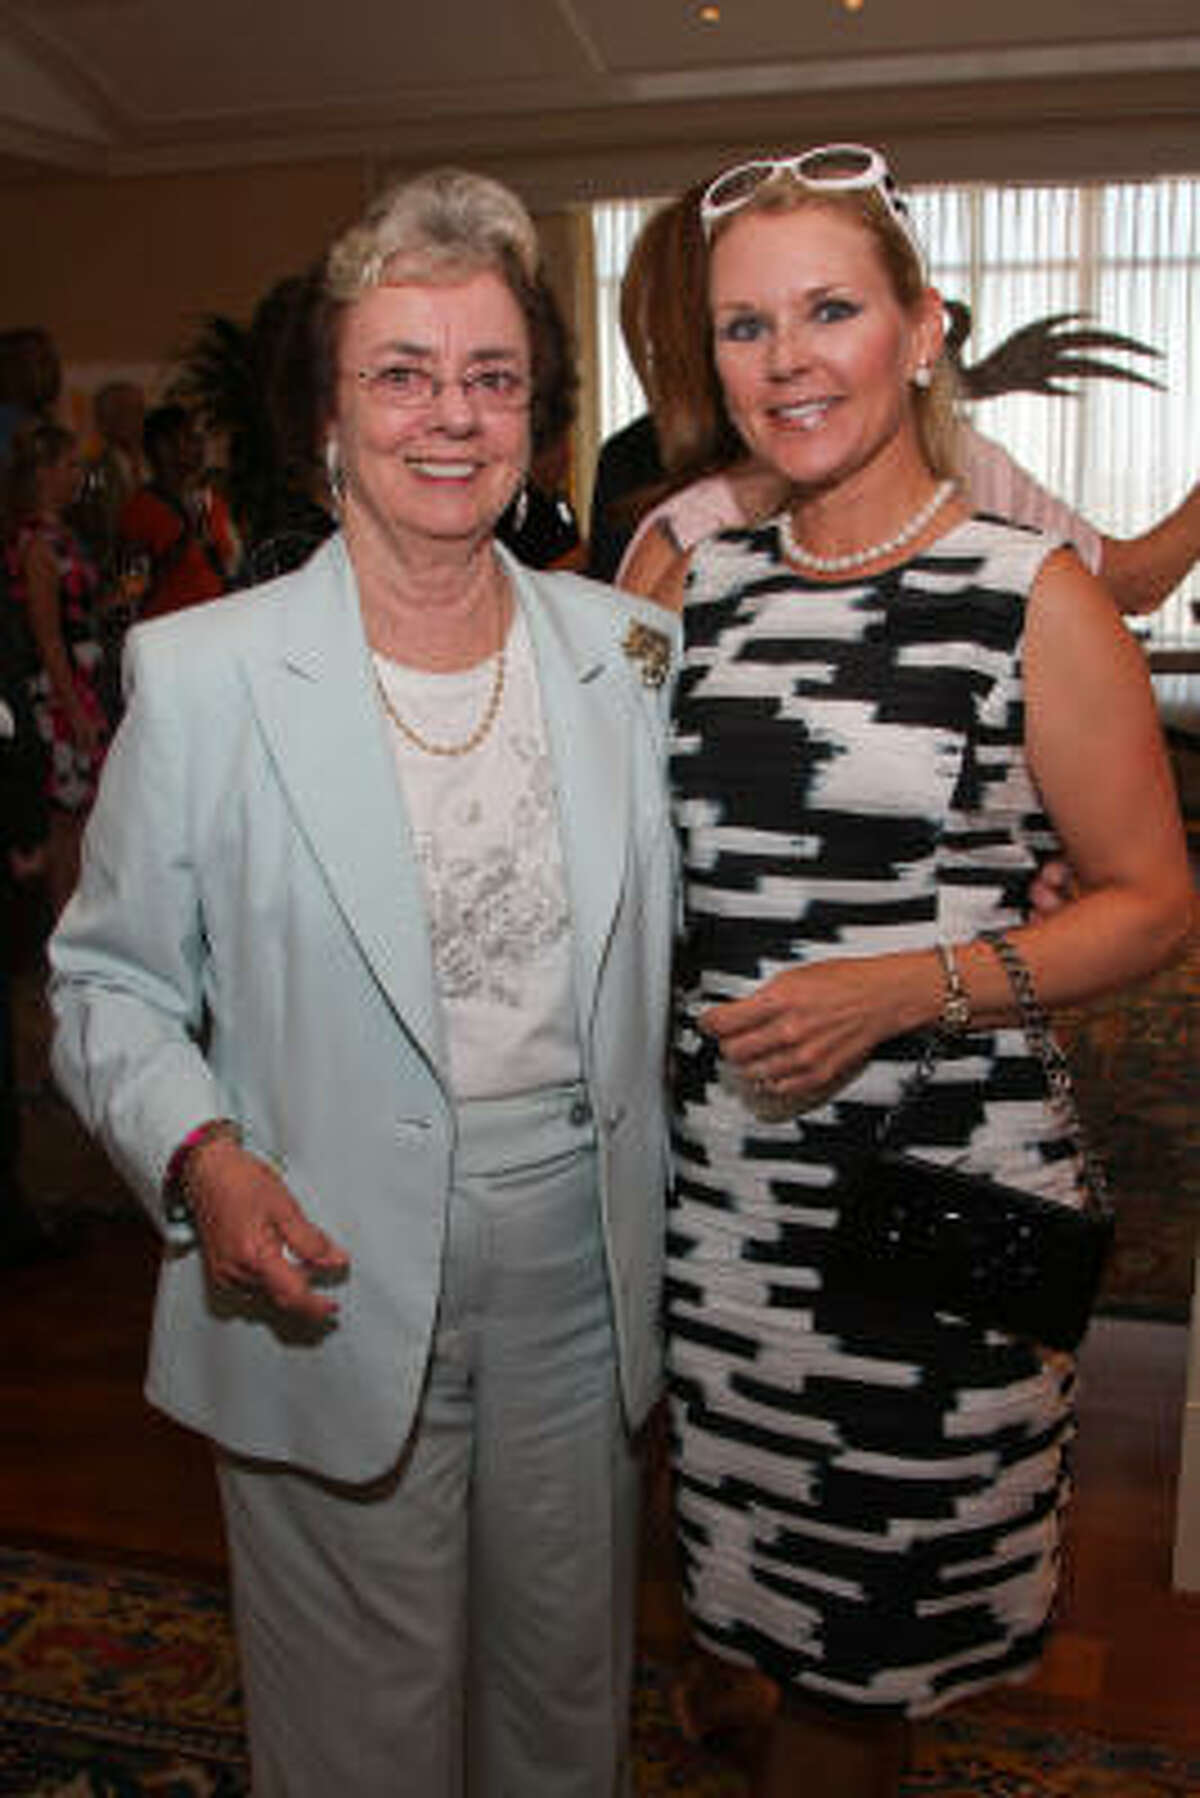 Jane Block and Mindy Hildebrand at an underwriters' party for Communities in Schools Houston's 2010 gala.